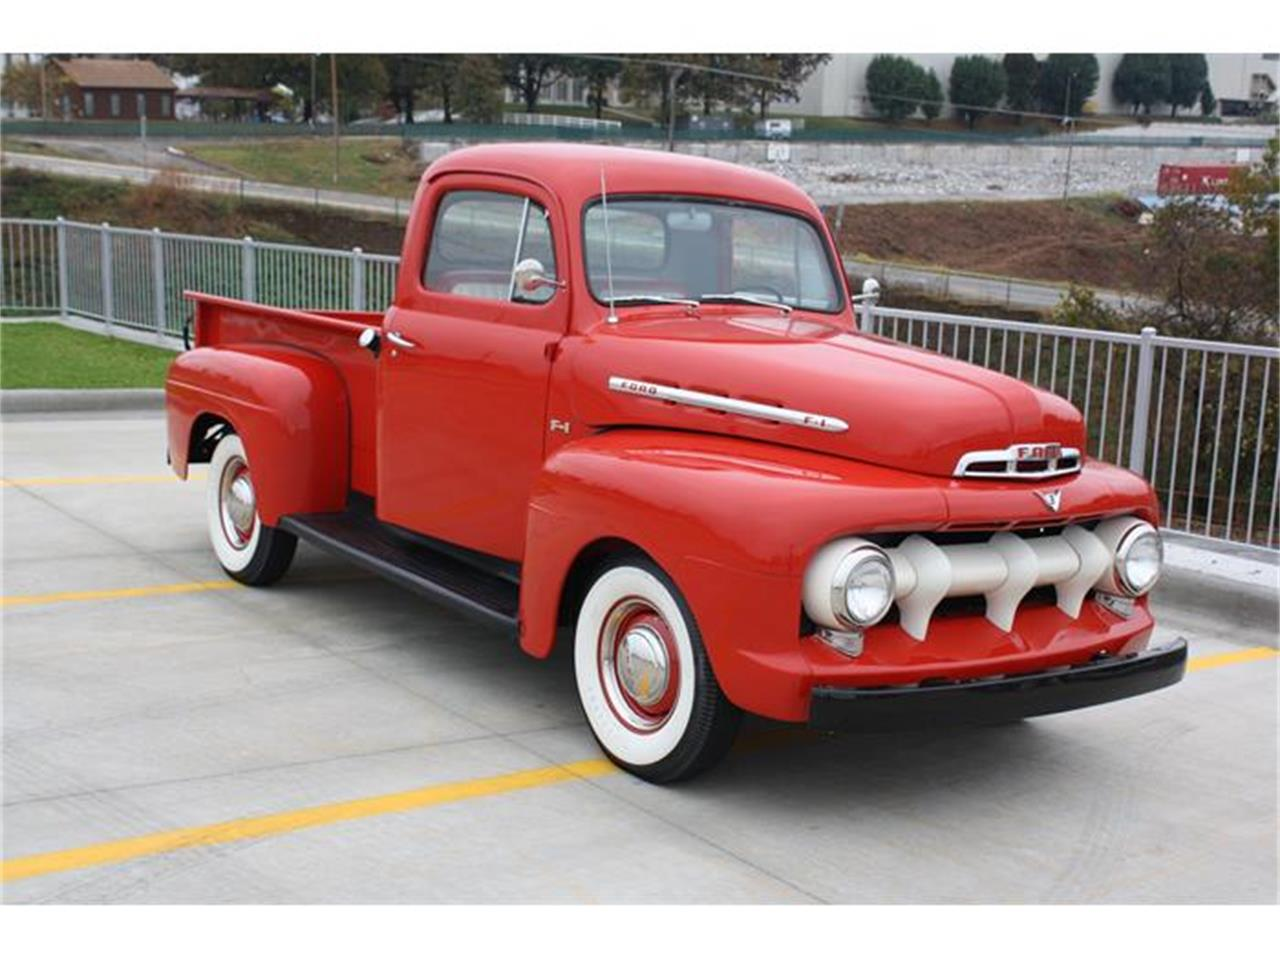 Large picture of 51 ford f1 located in branson missouri 47500 00 fpwe